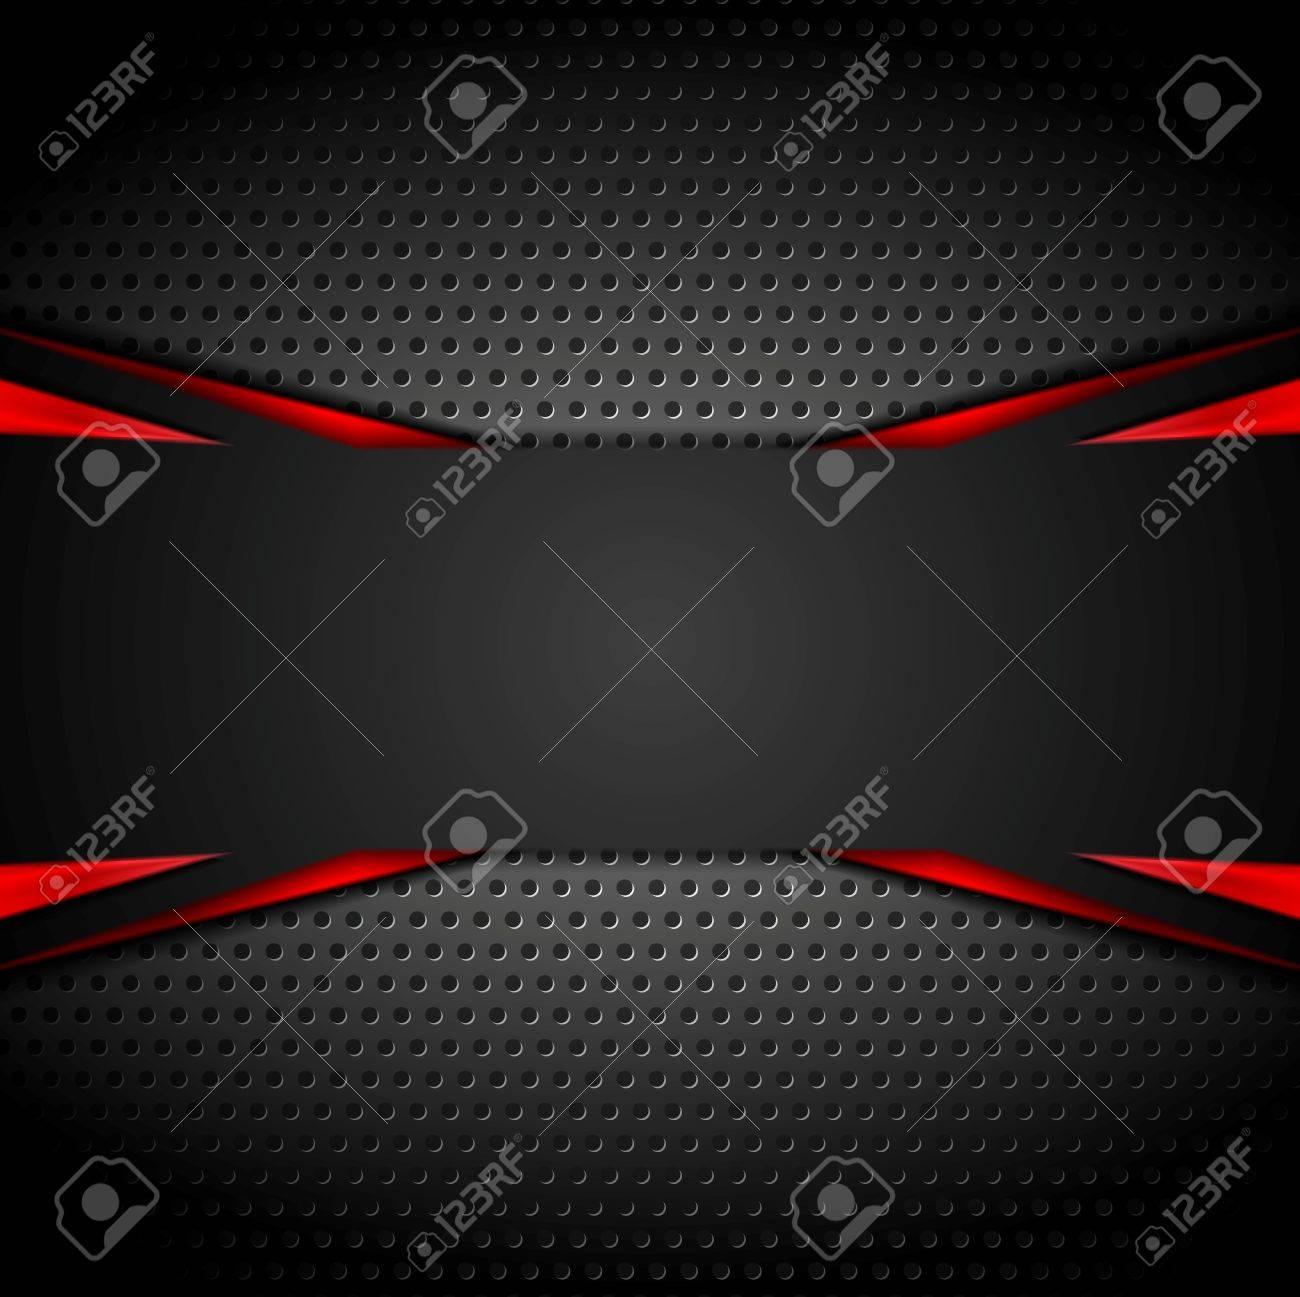 Abstract dark corporate red black background. Vector illustration - 55687200